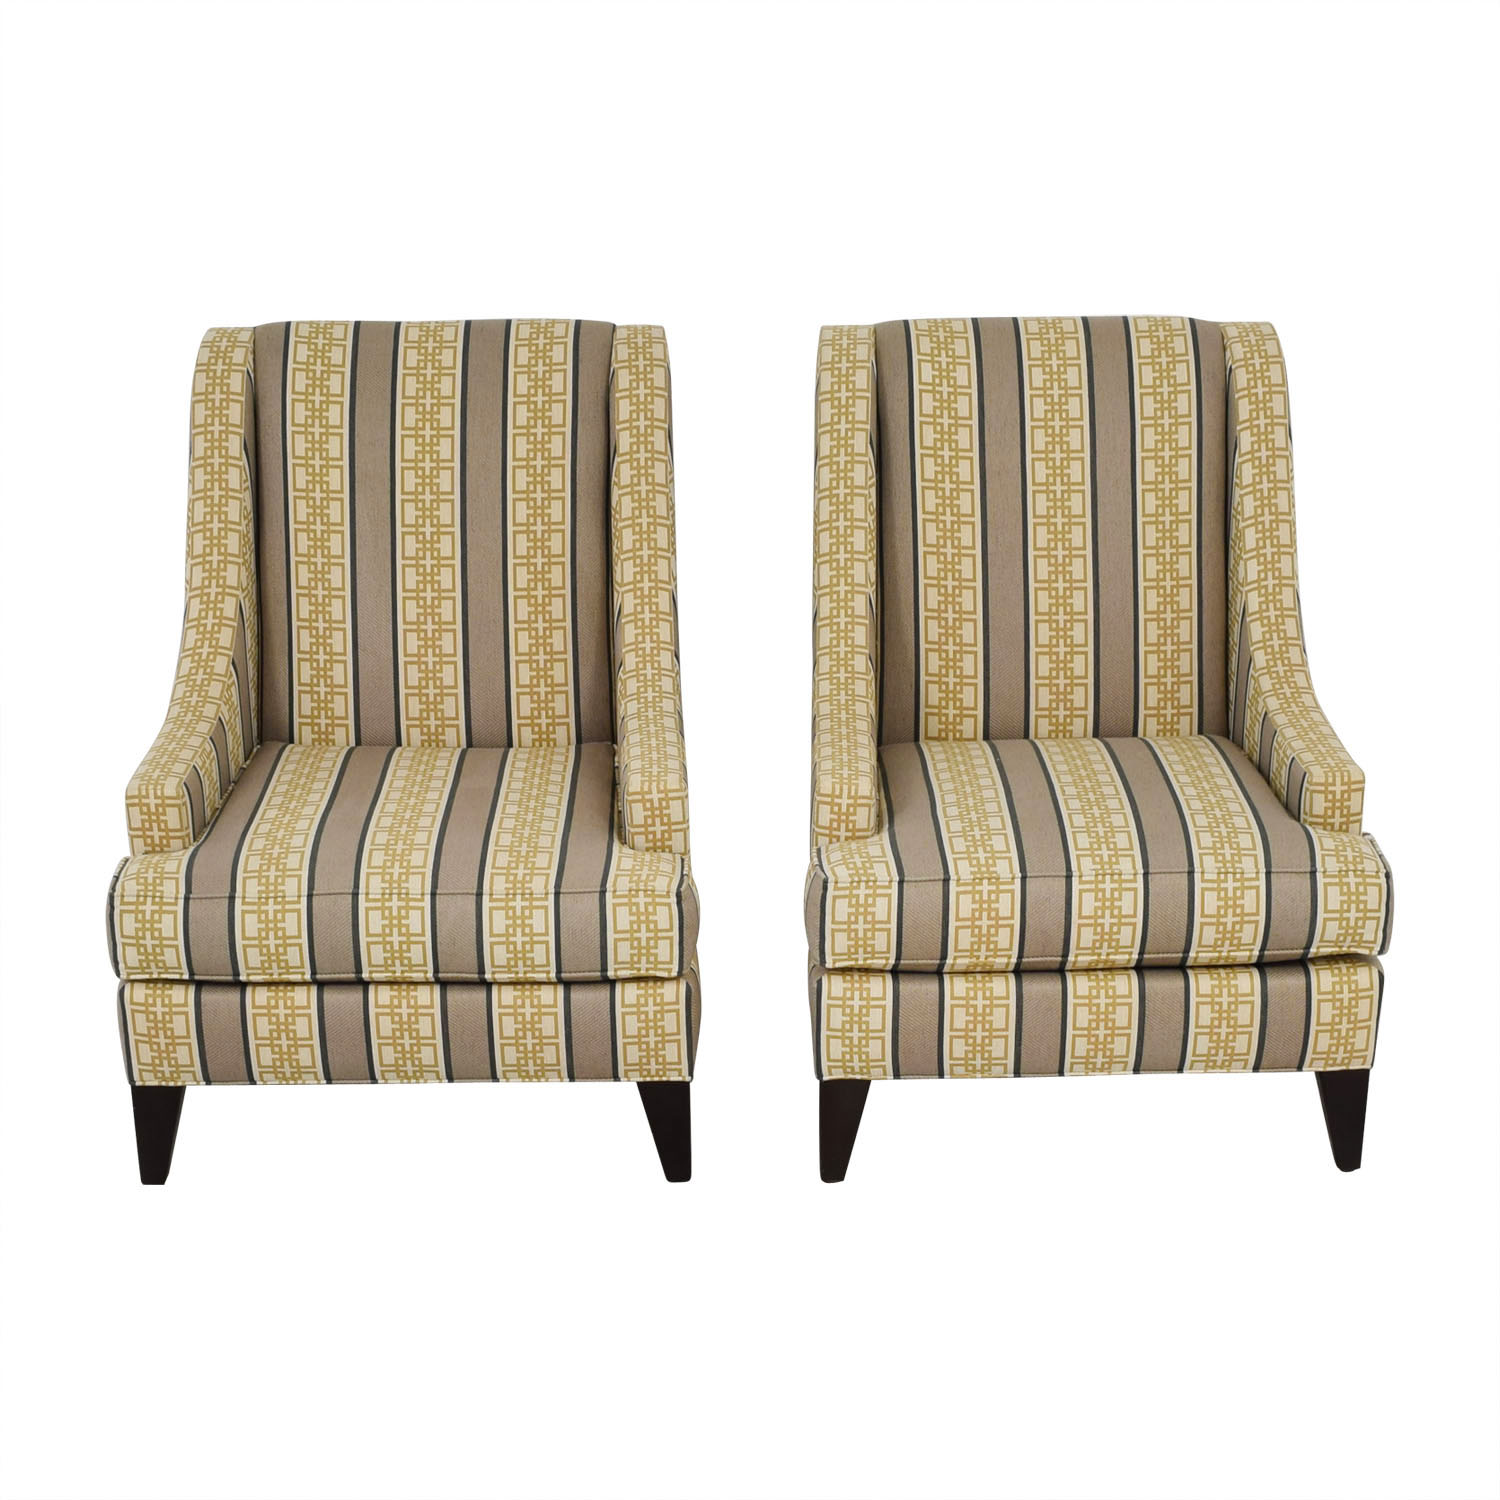 Multi Colored Accent Chairs 90 Off Ethan Allen Ethan Allen Emerson Multi Colored